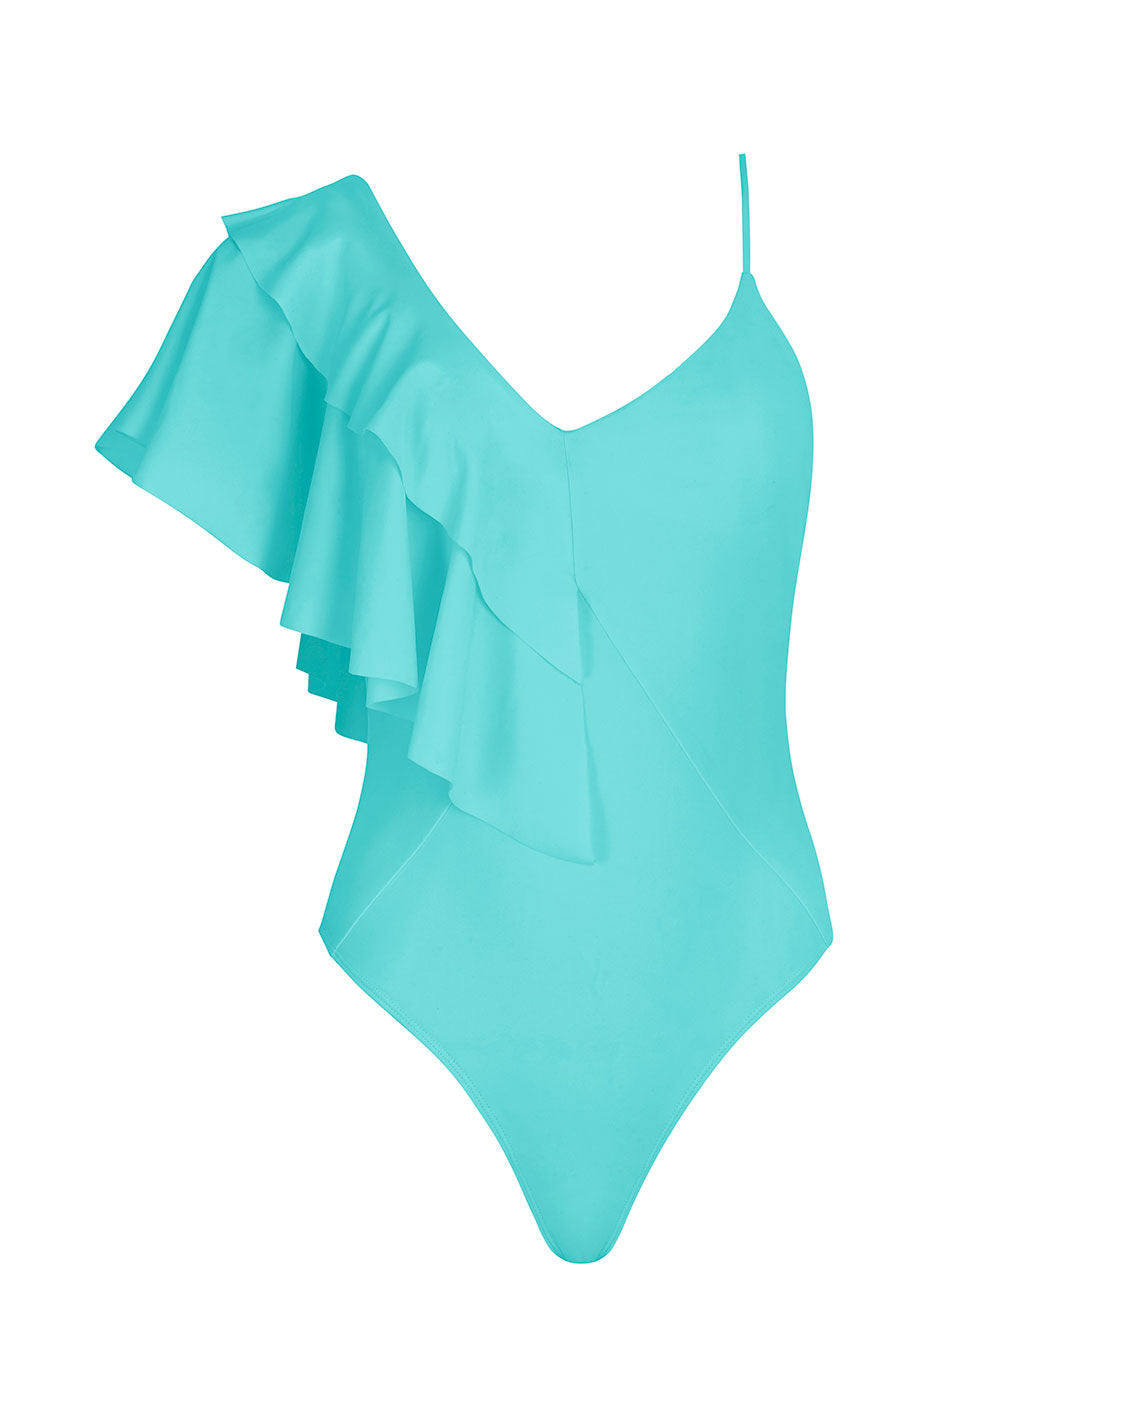 Sollier Swimsuit in Coral Coast